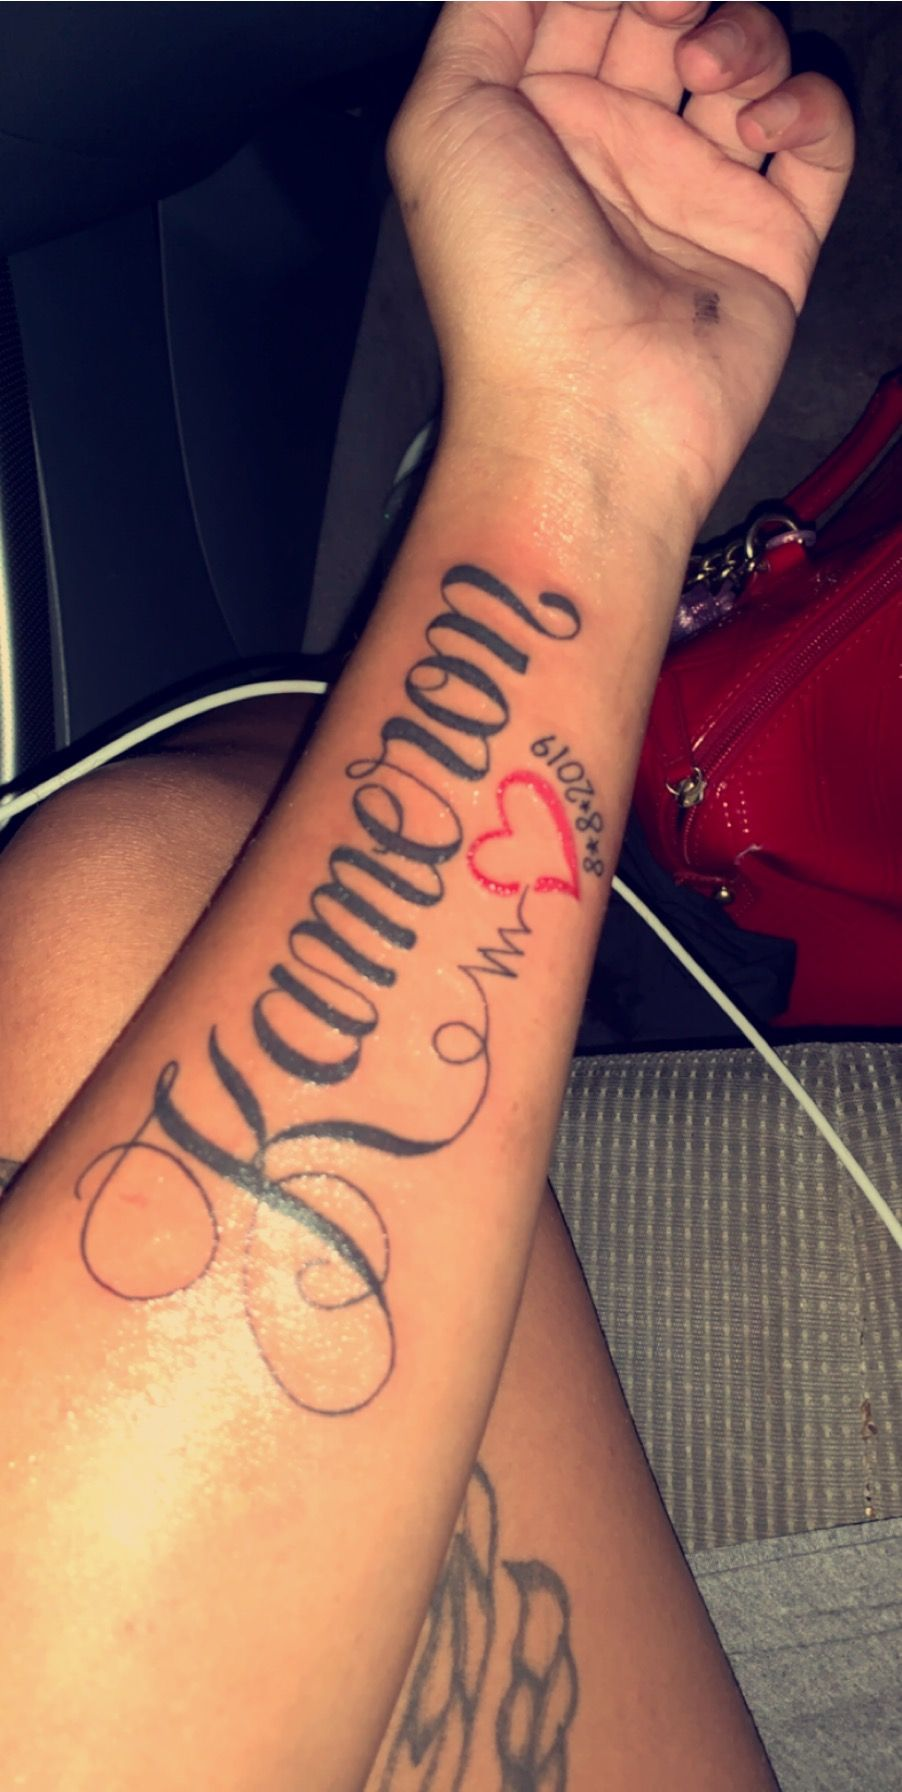 Baby Name Tattoo Baby Name Tattoos Name Tattoos On Arm Name Tattoos For Moms